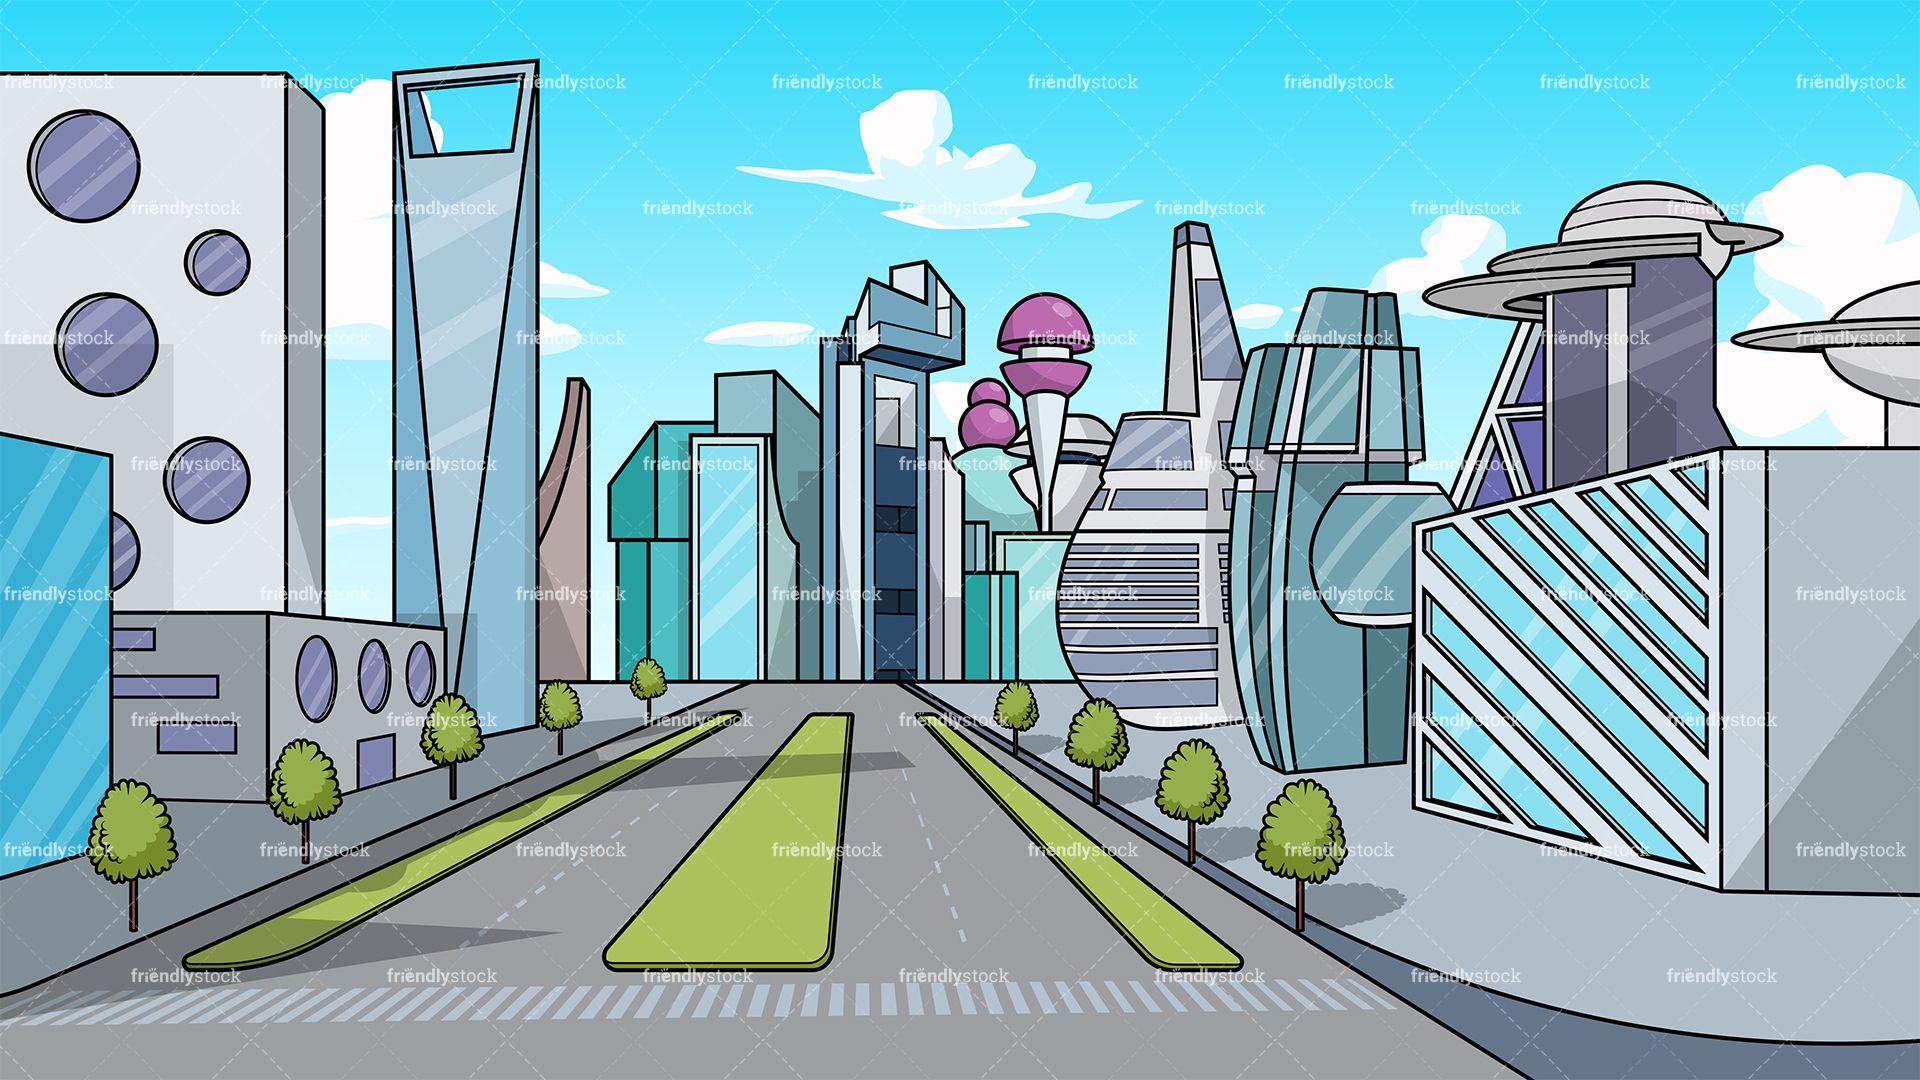 A city street with buildings background cartoon clipart png royalty free stock Futuristic City Background | Urban Street Design in 2019 ... png royalty free stock